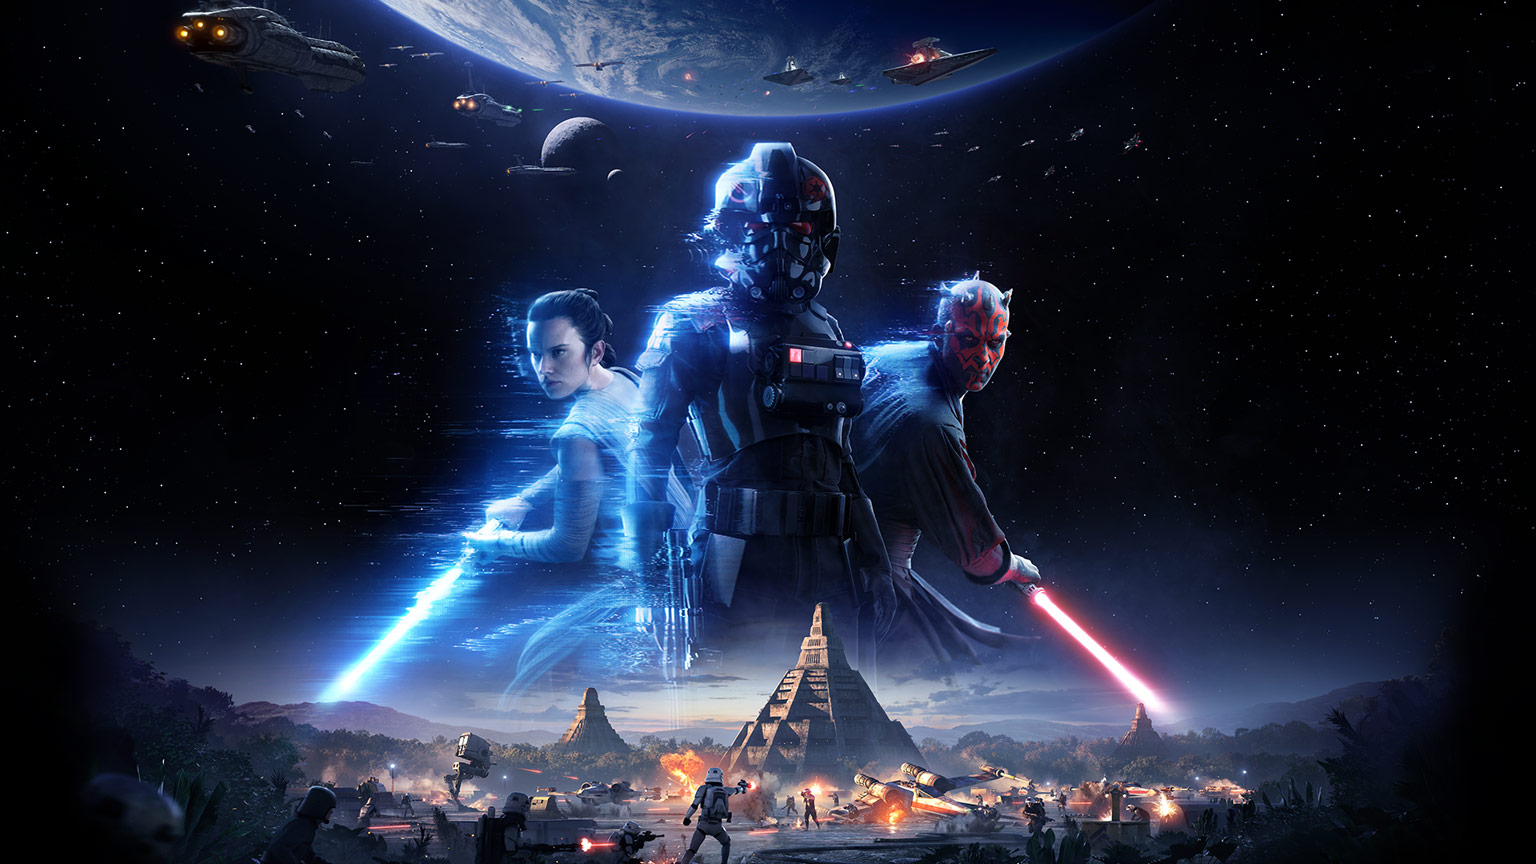 Star Wars Battlefront II key art featuring Iden Versio, Rey, and Darth Maul.